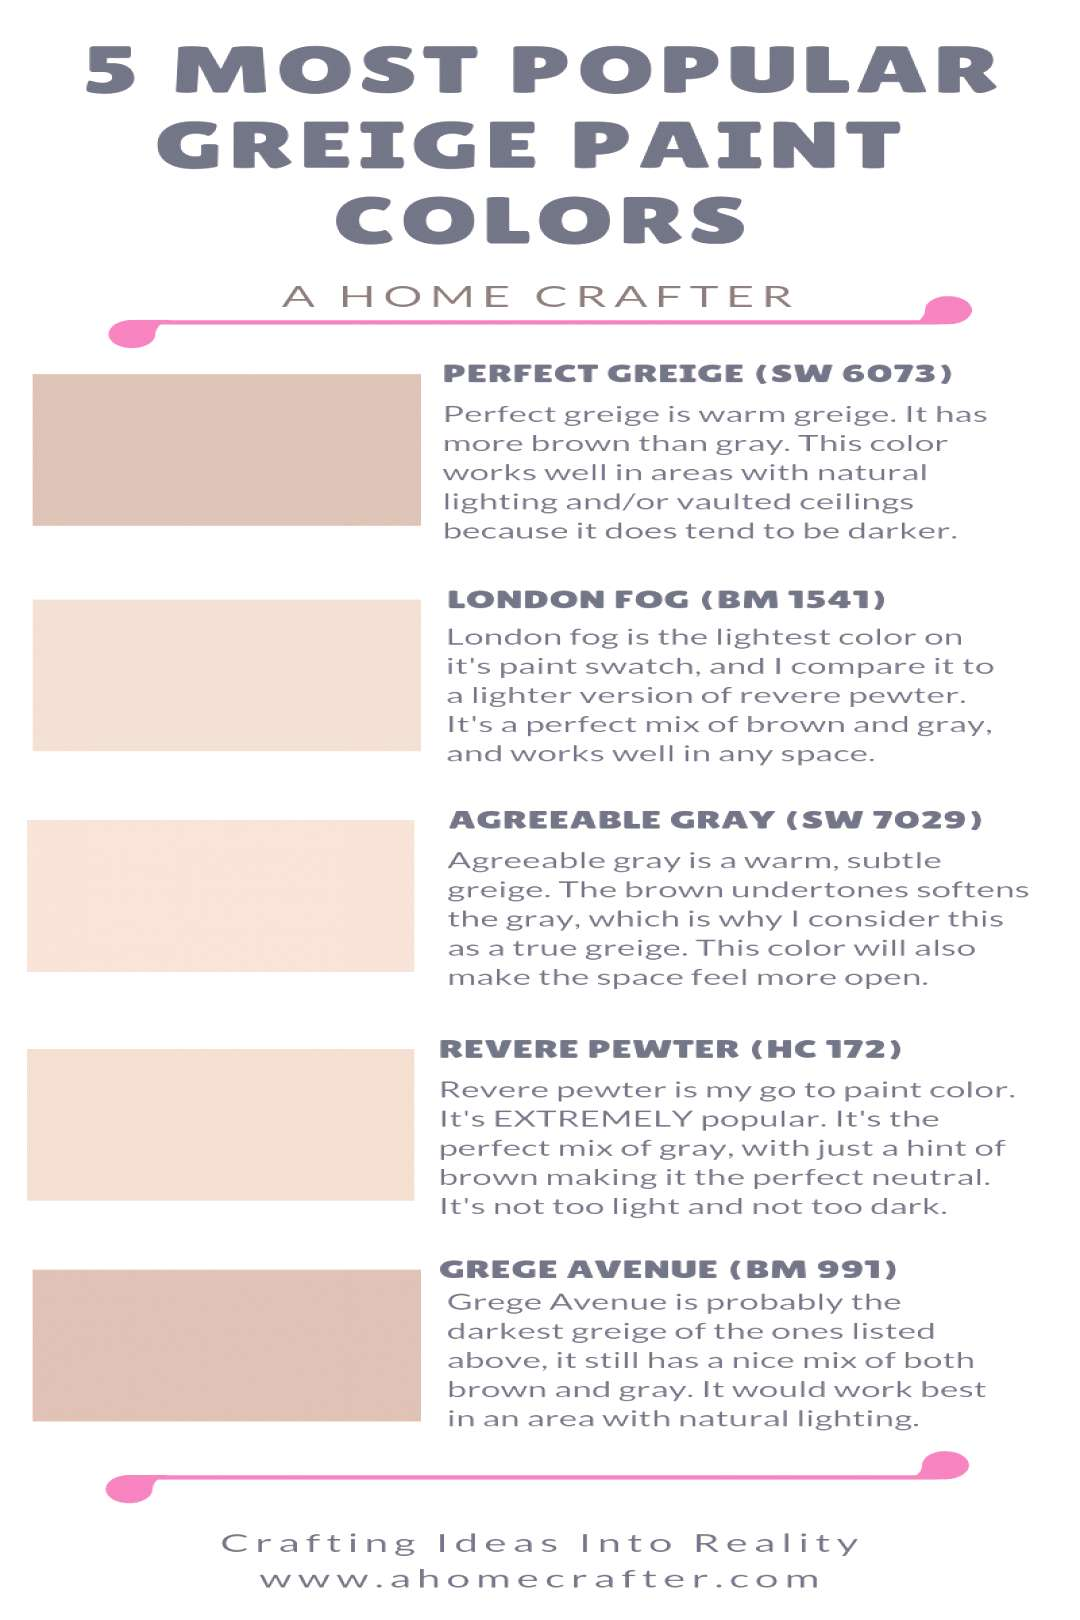 Most Popular Greige Paint Colors Gray + Beige = Greige!  Perfect Greige  London Fog  Agreeable Gray